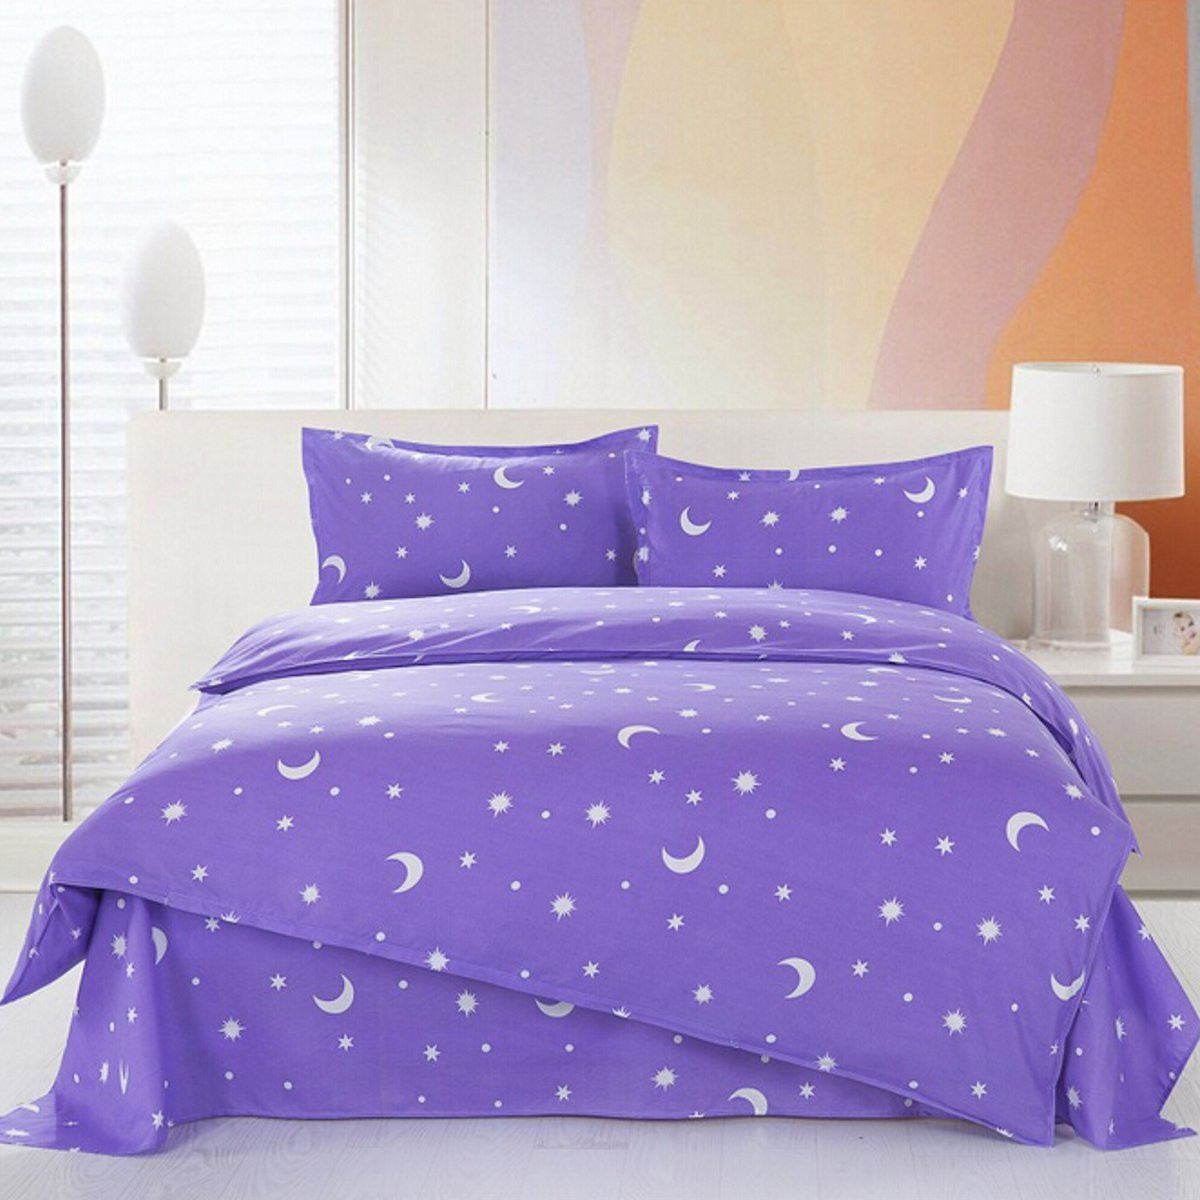 Duvet Cover With Pillow Case Quilt Cover Bedding Set